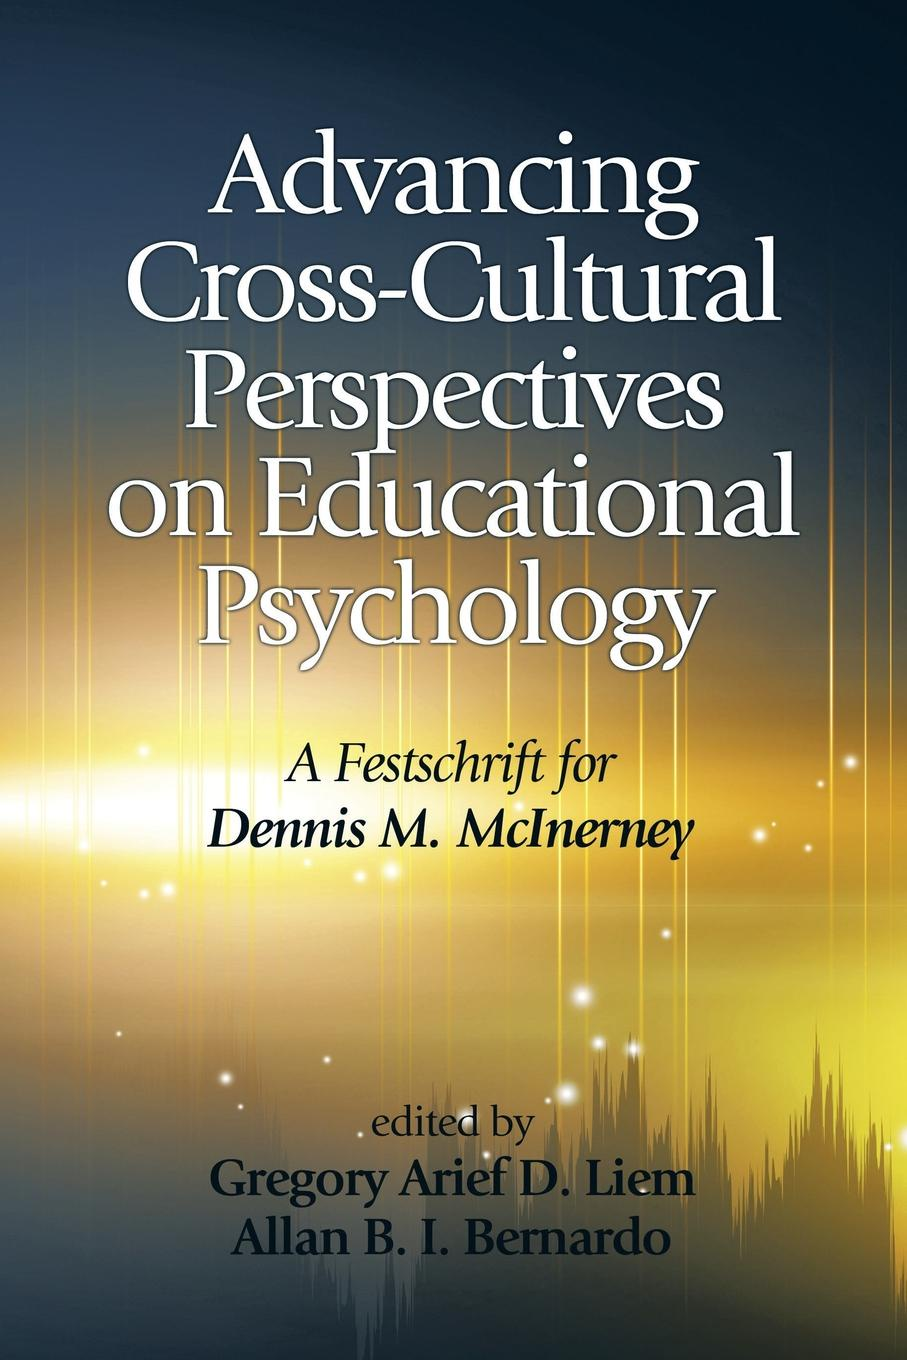 Advancing Cross-Cultural Perspectives on Educational Psychology. A Festschrift for Dennis M. McInerney lennart reinhold job motivation and culture a cross cultural comparison of germany and the united states